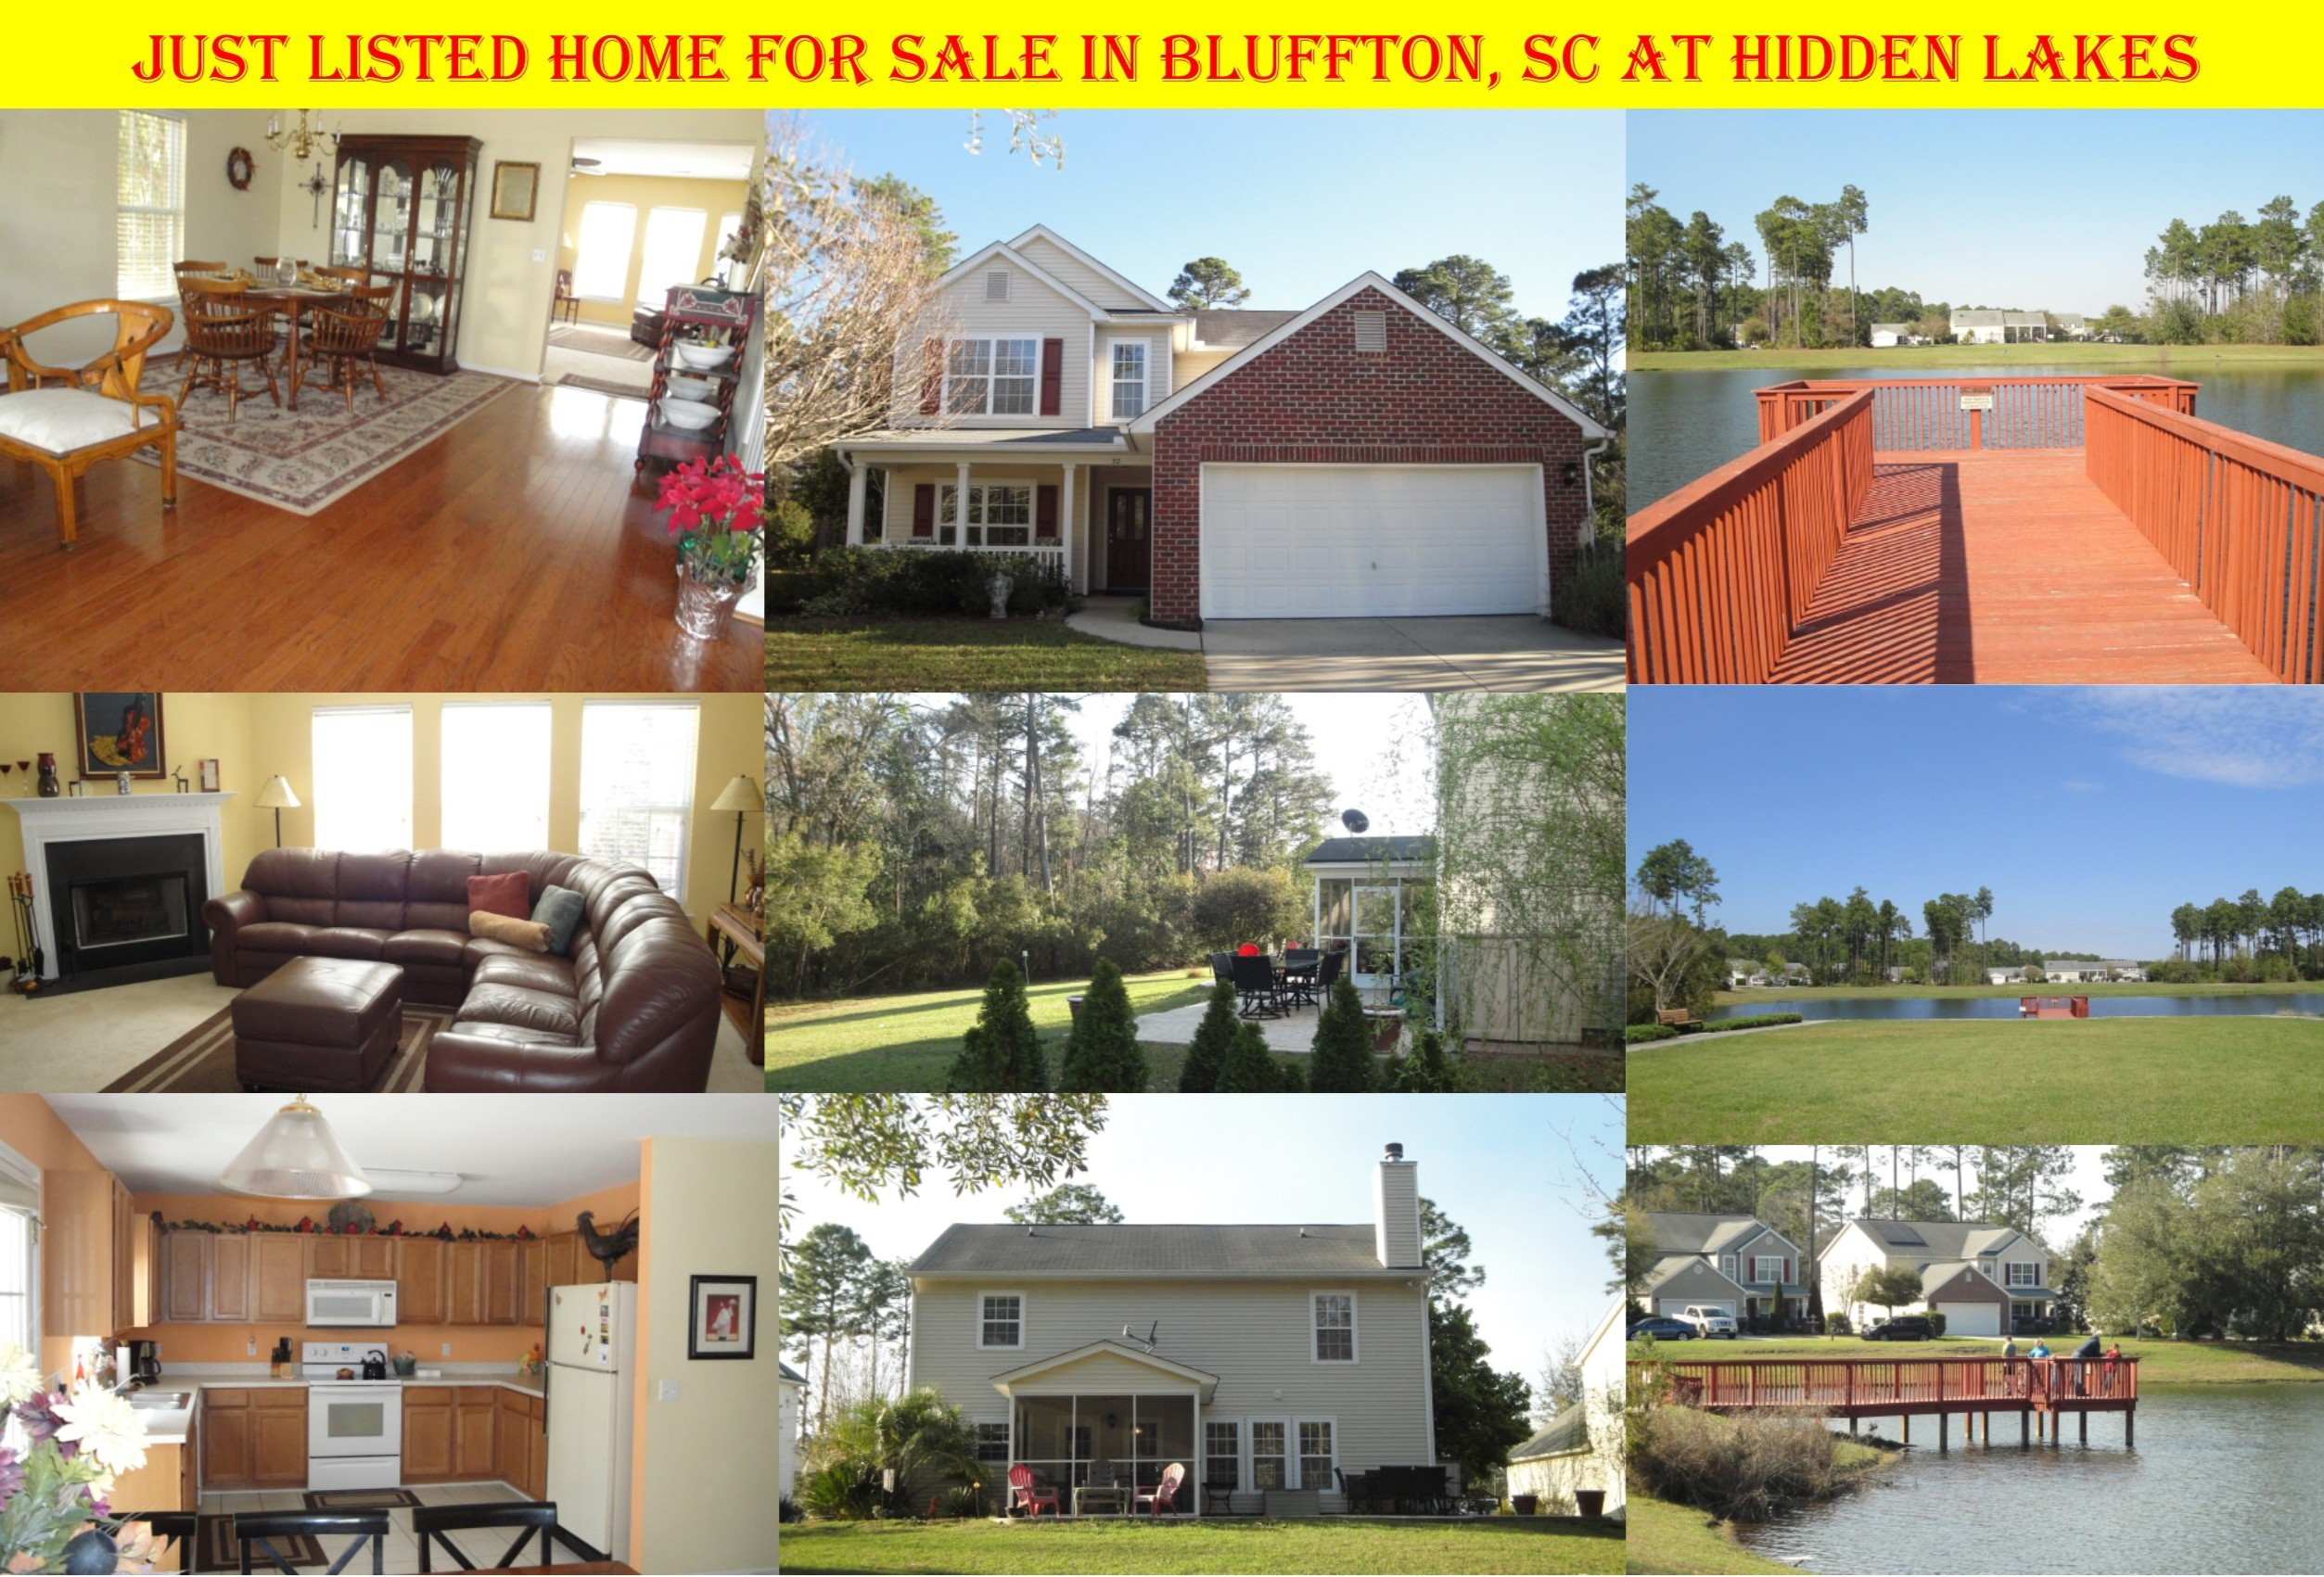 Just Listed, Homes for Sale, Bluffton, SC, 29910, Hidden Lakes, Lake Troy, Waterfront